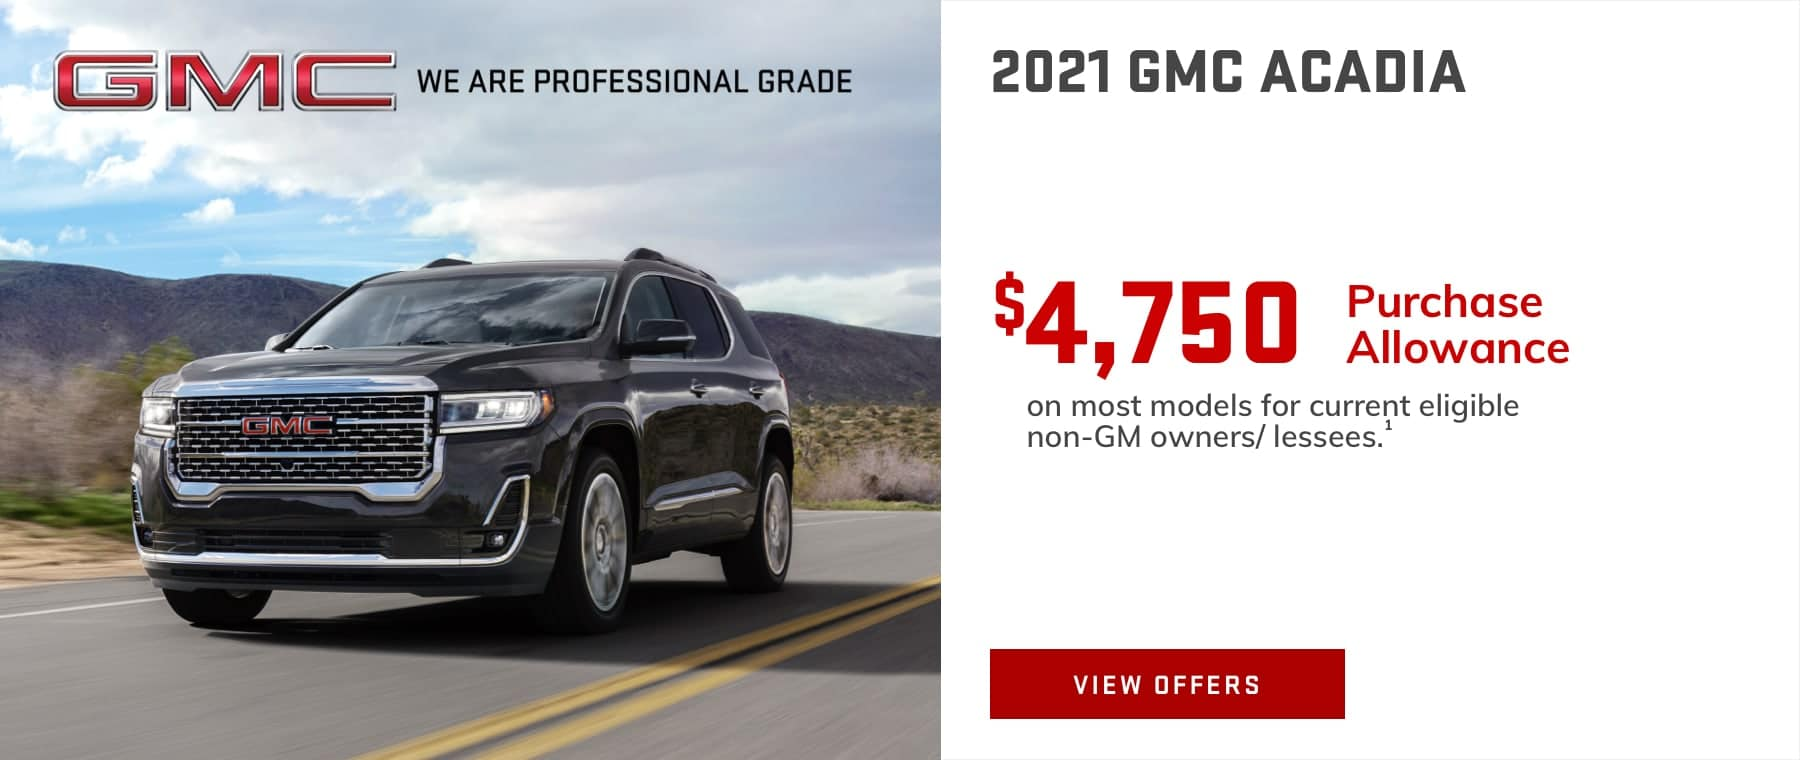 $4,750 Purchase Allowance on most models for current eligible non-GM owners/lessees.